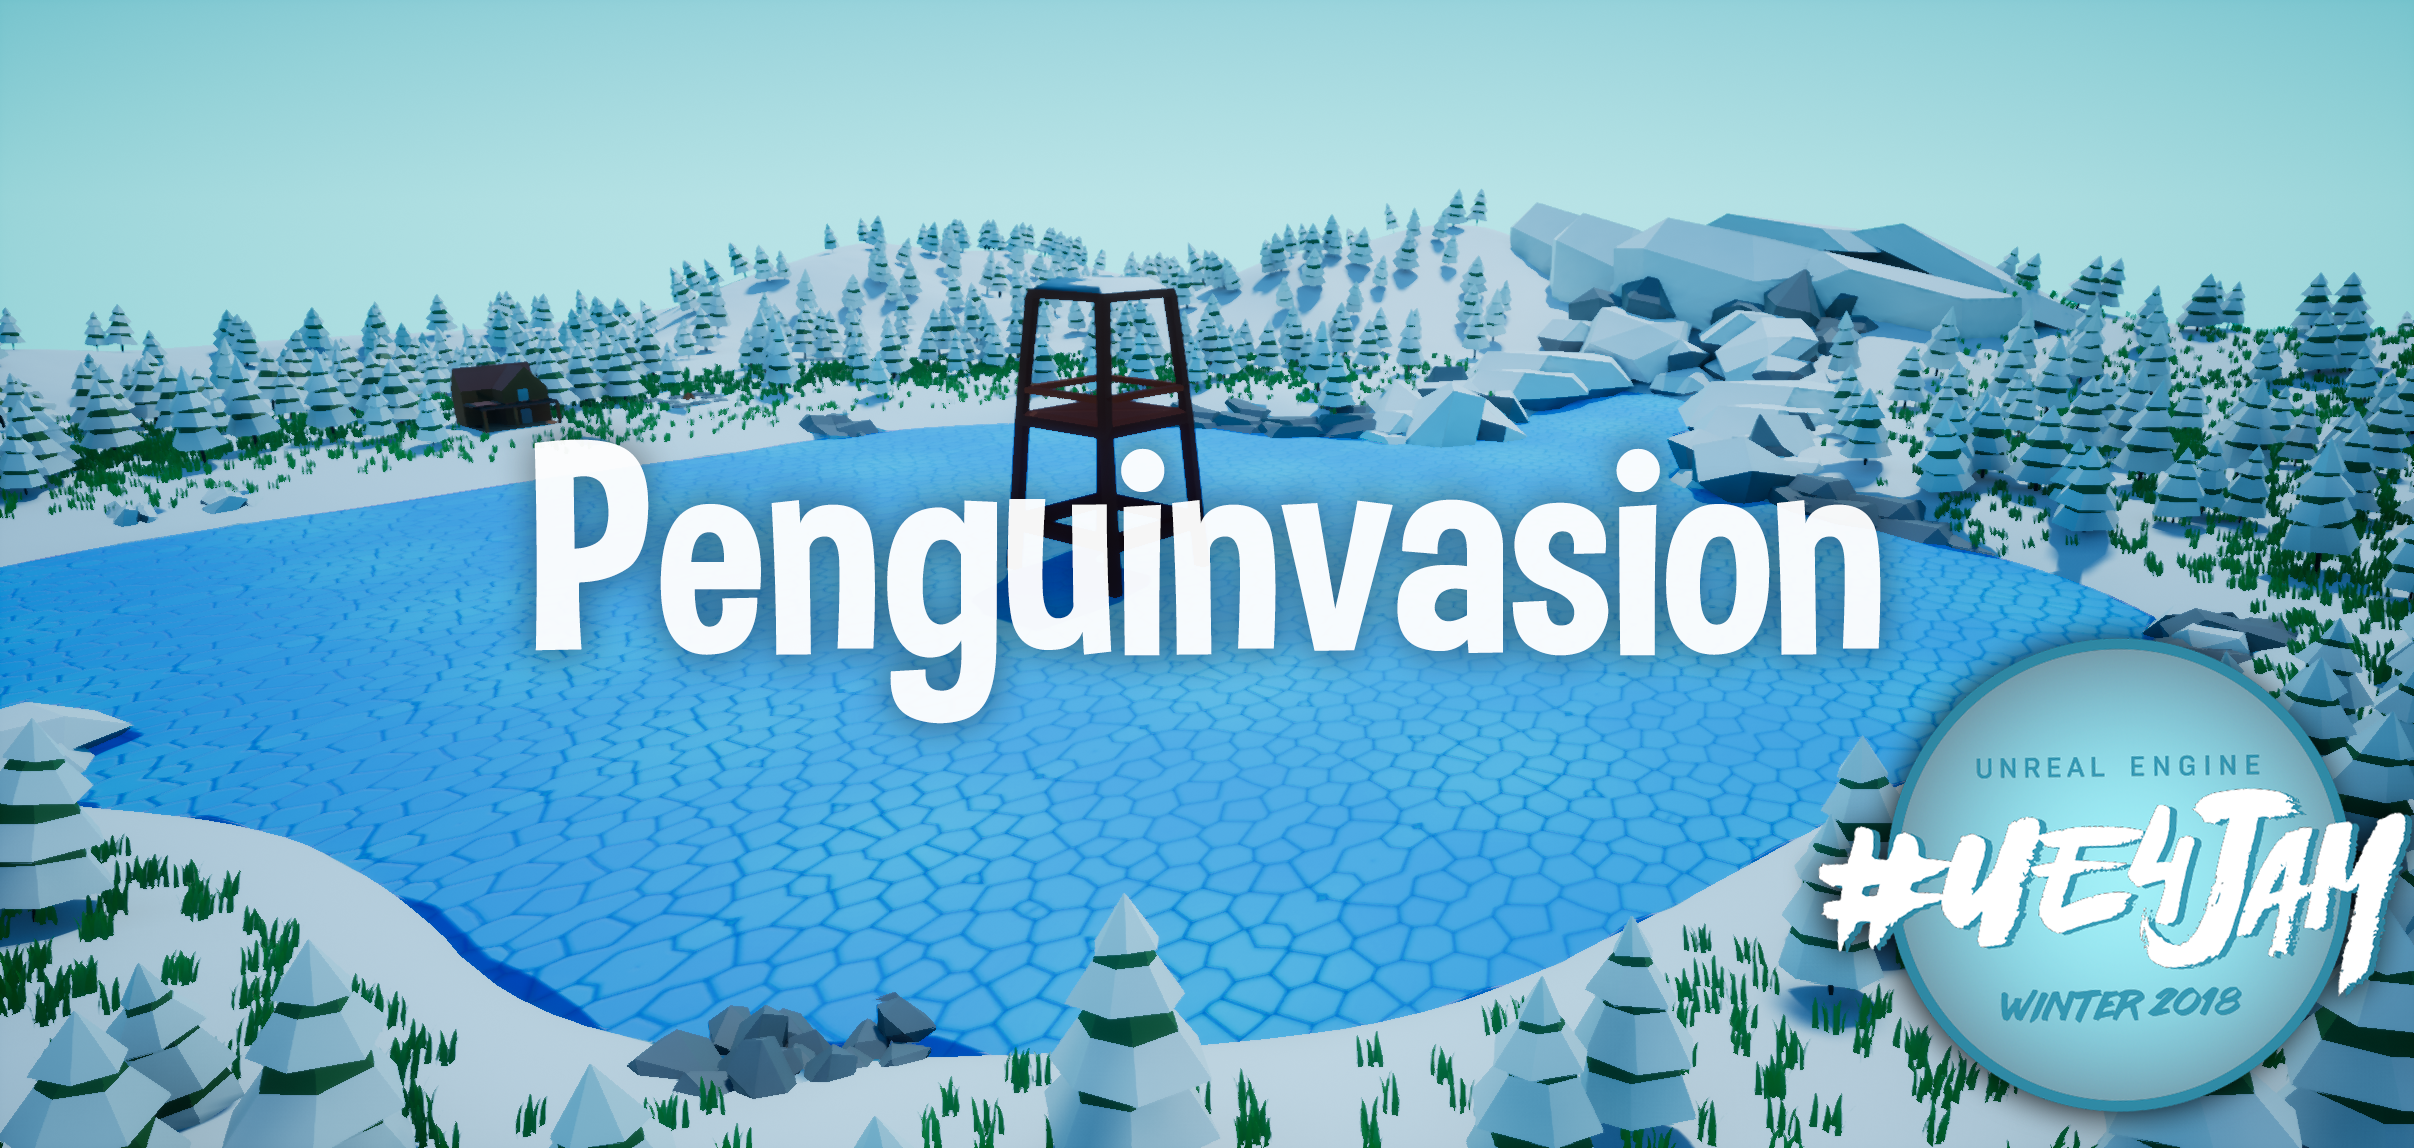 #UE4Jam Winter 18 - PenguInvasion